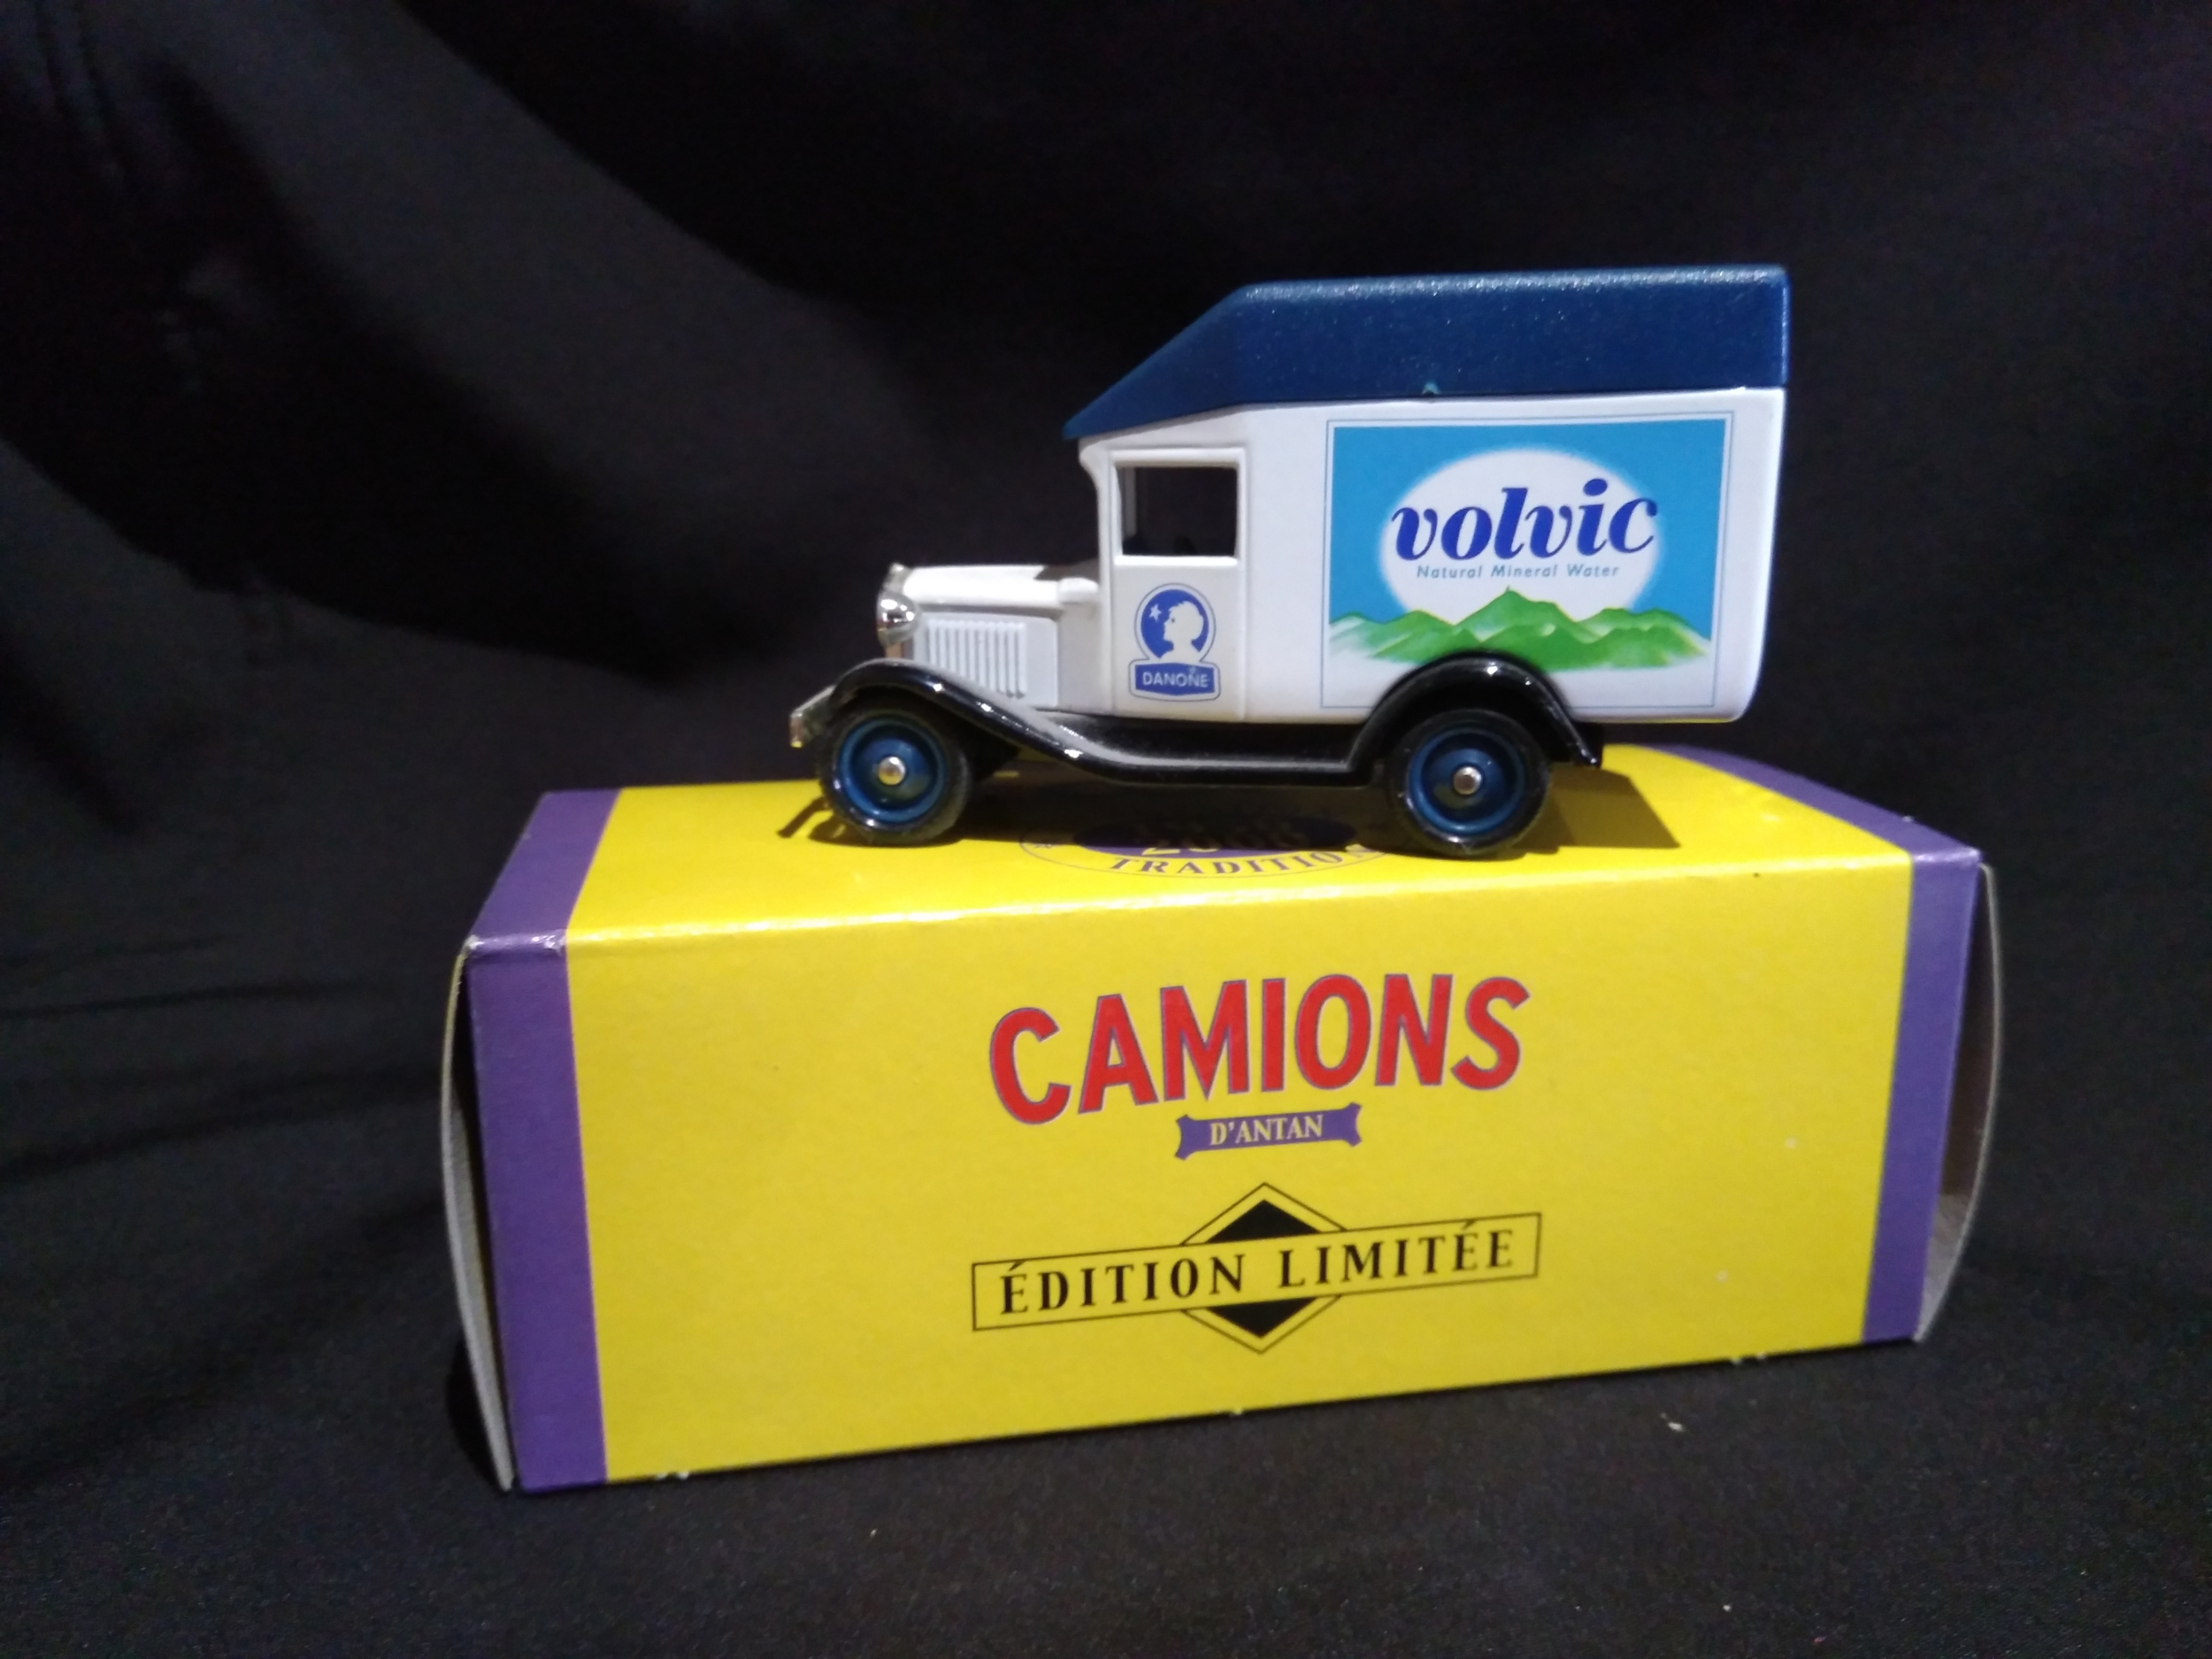 Camionnette publicitaire Ford A luton roof Volvic